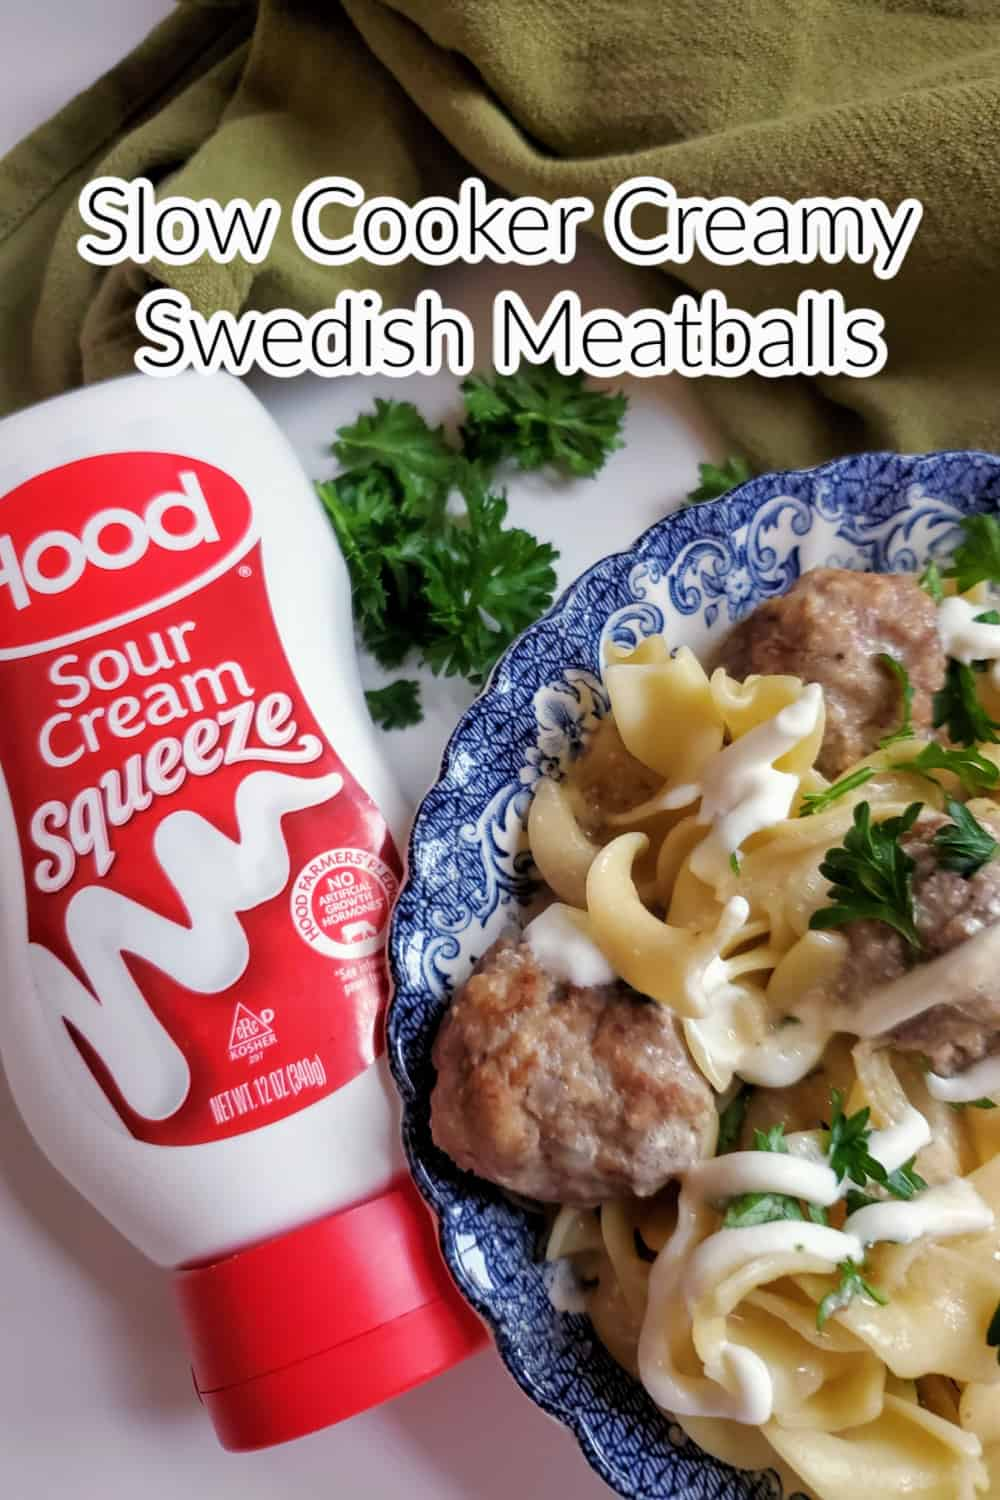 Slow cooker Creamy Swedish Meatballs are an easy and satisfying meal to make for any day of the week. Slow Cooker Creamy Swedish Meatballs are like a traditional Swedish dish with perfectly browned, flavorful homemade meatballs coated in a rich cream sauce that is slow-cooked. The rich creamy sauce enhances the flavor of the meatballs and is tender with every bite. via @Mooreorlesscook